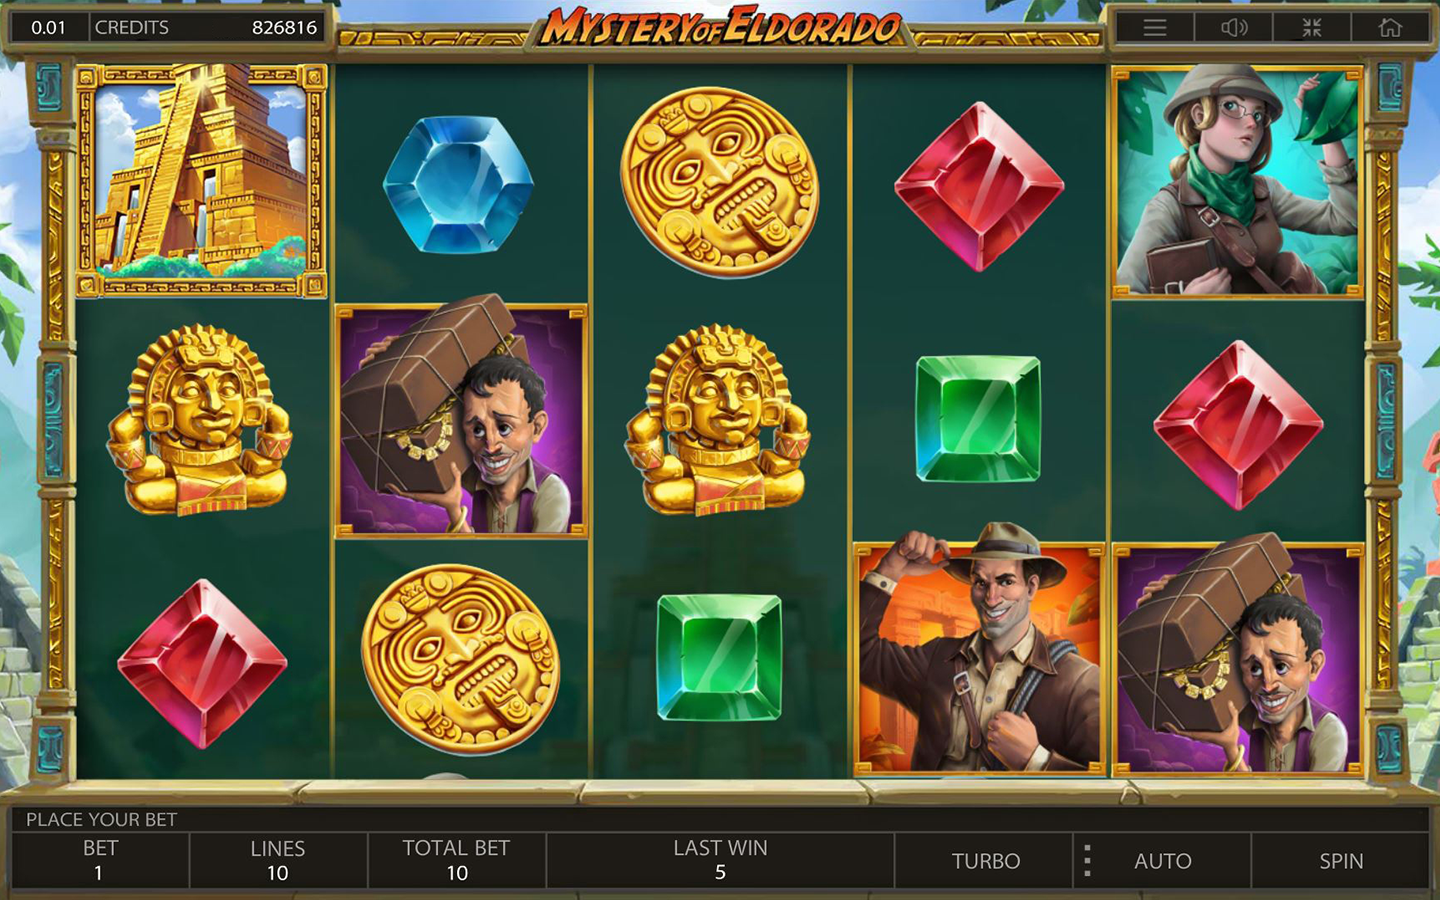 TOP ADVENTURE SLOTS 2020 | Play MYSTERY OF ELDORADO SLOT online!